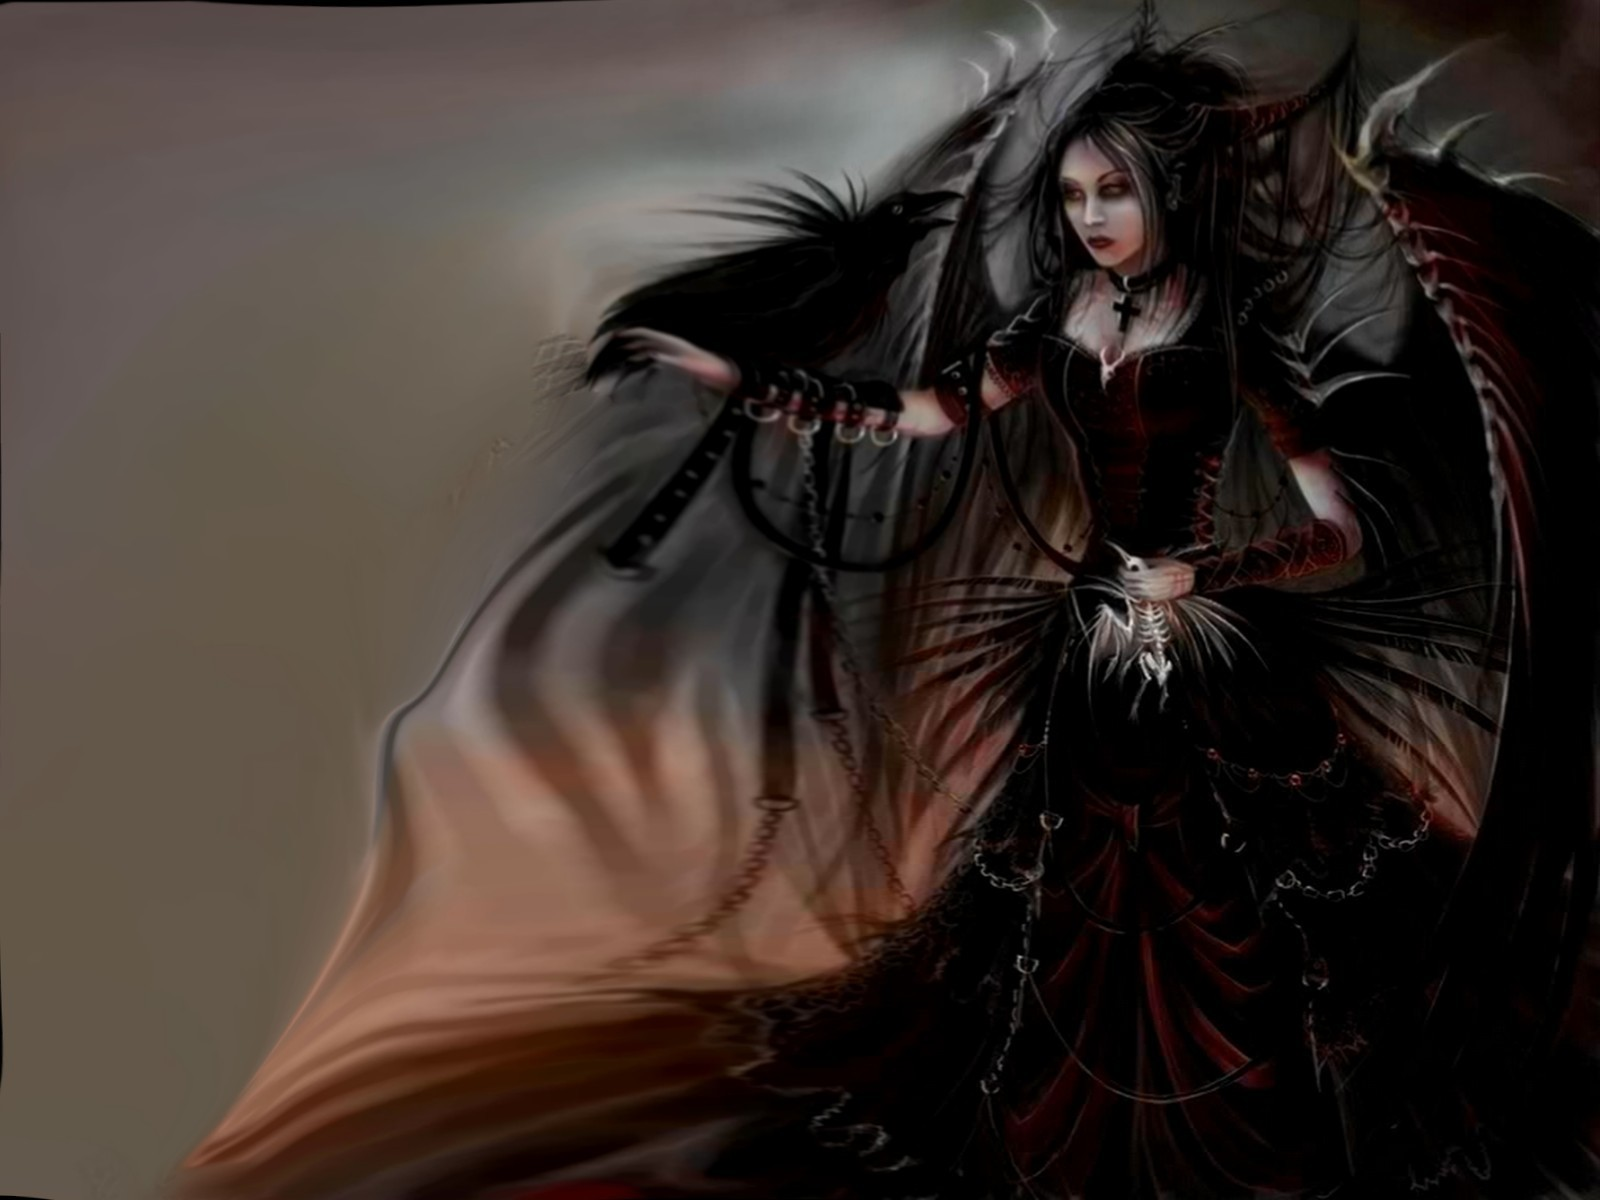 sexy gothic fairy wallpaper - photo #11